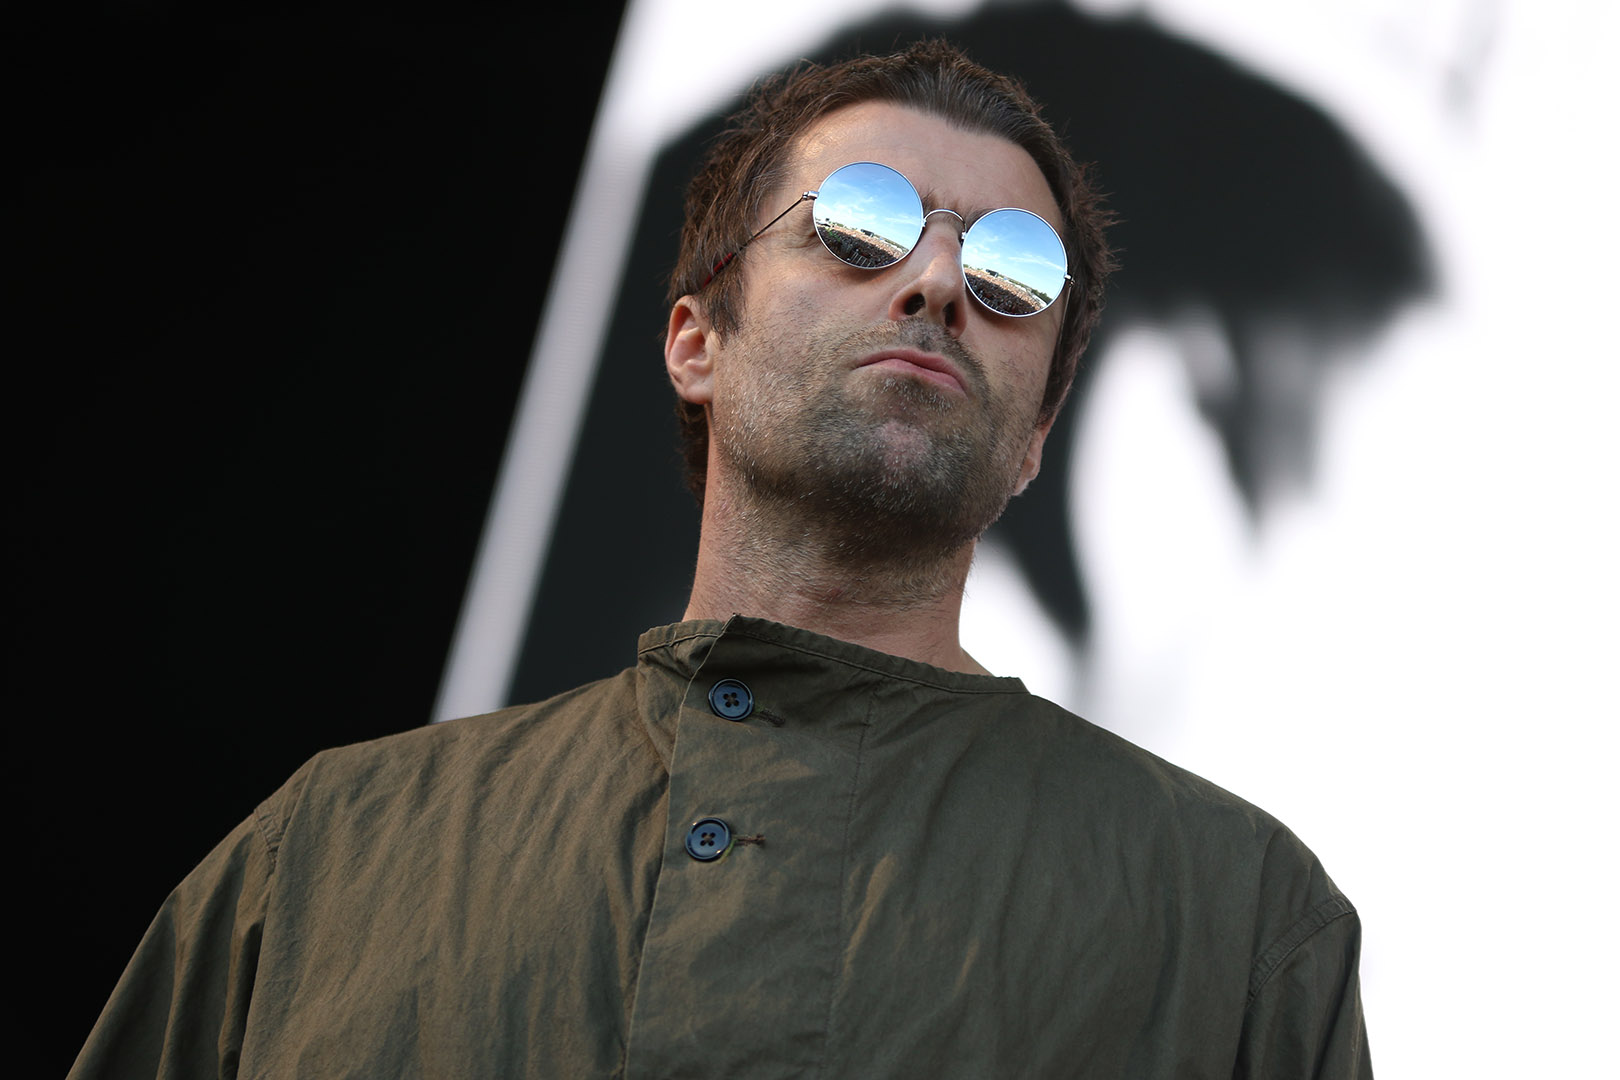 Liam Gallagher - Rodrigo Rivas Ruiz